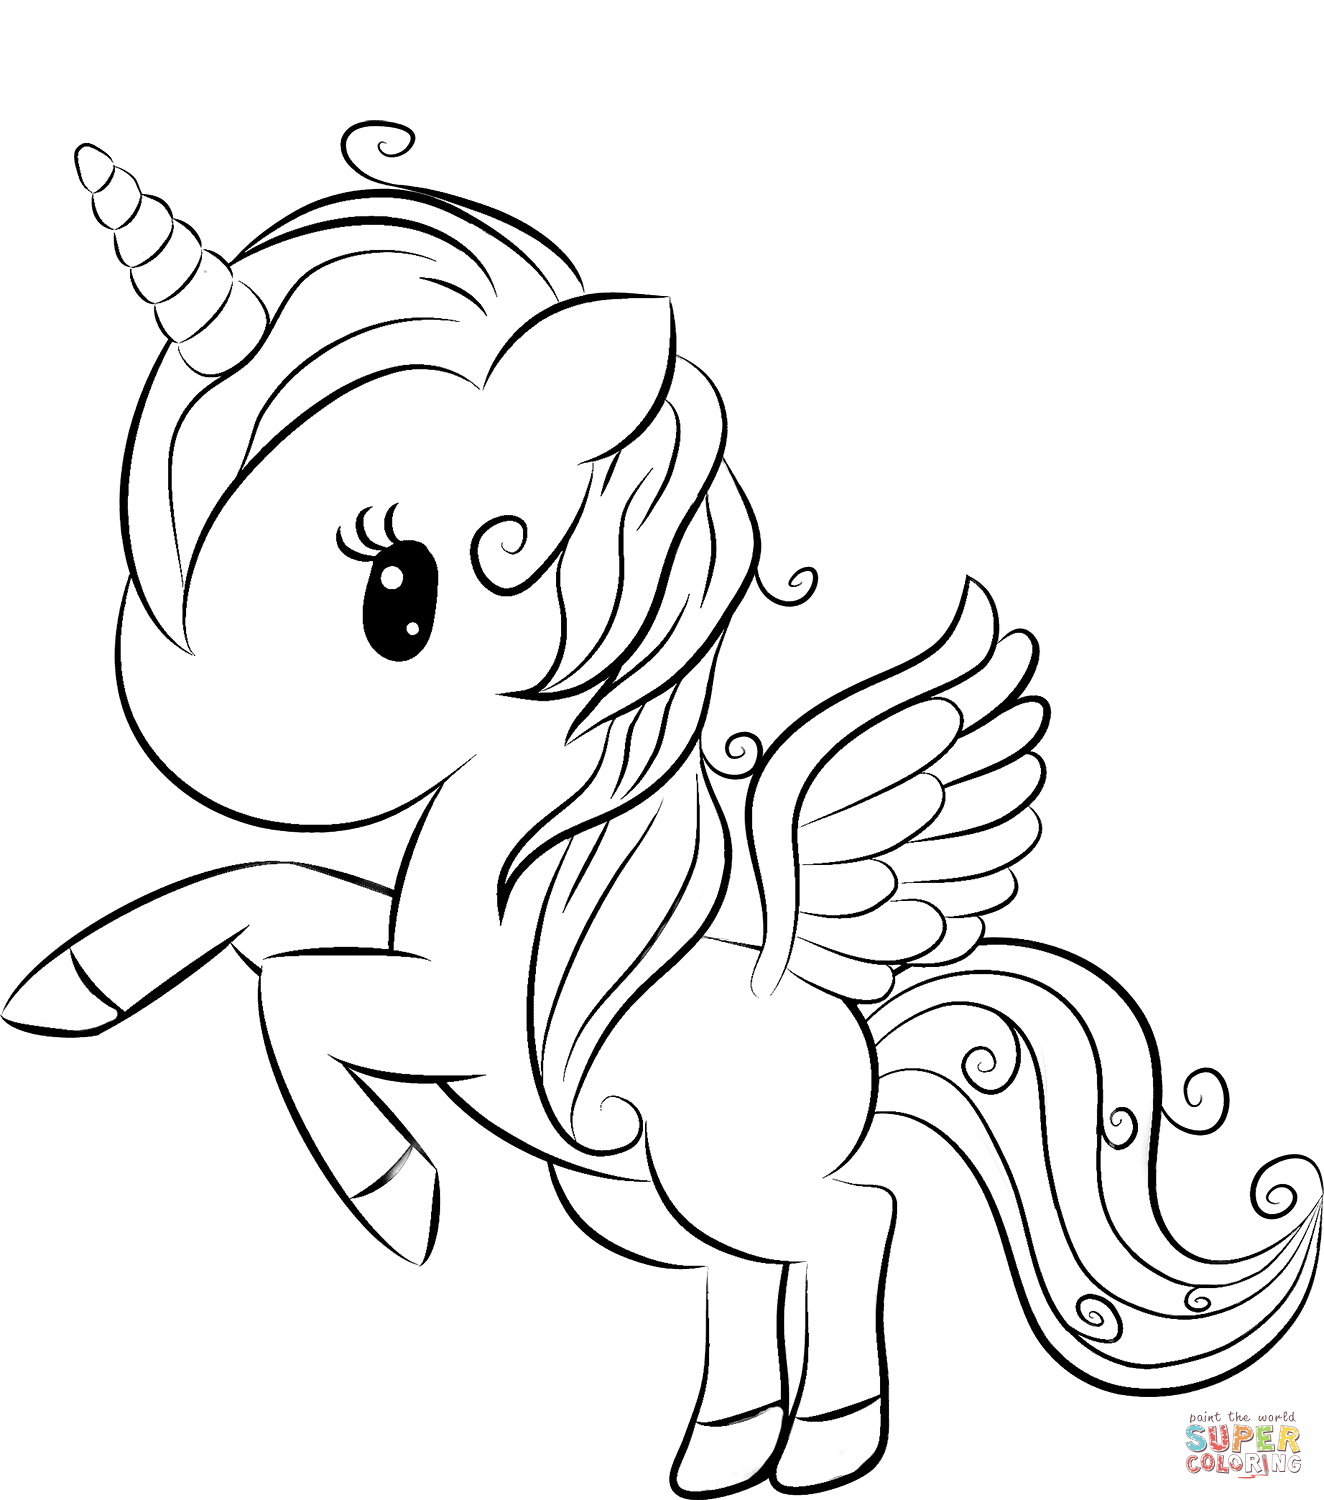 coloring pictures of unicorns unicorn coloring pages unicorns pictures of coloring